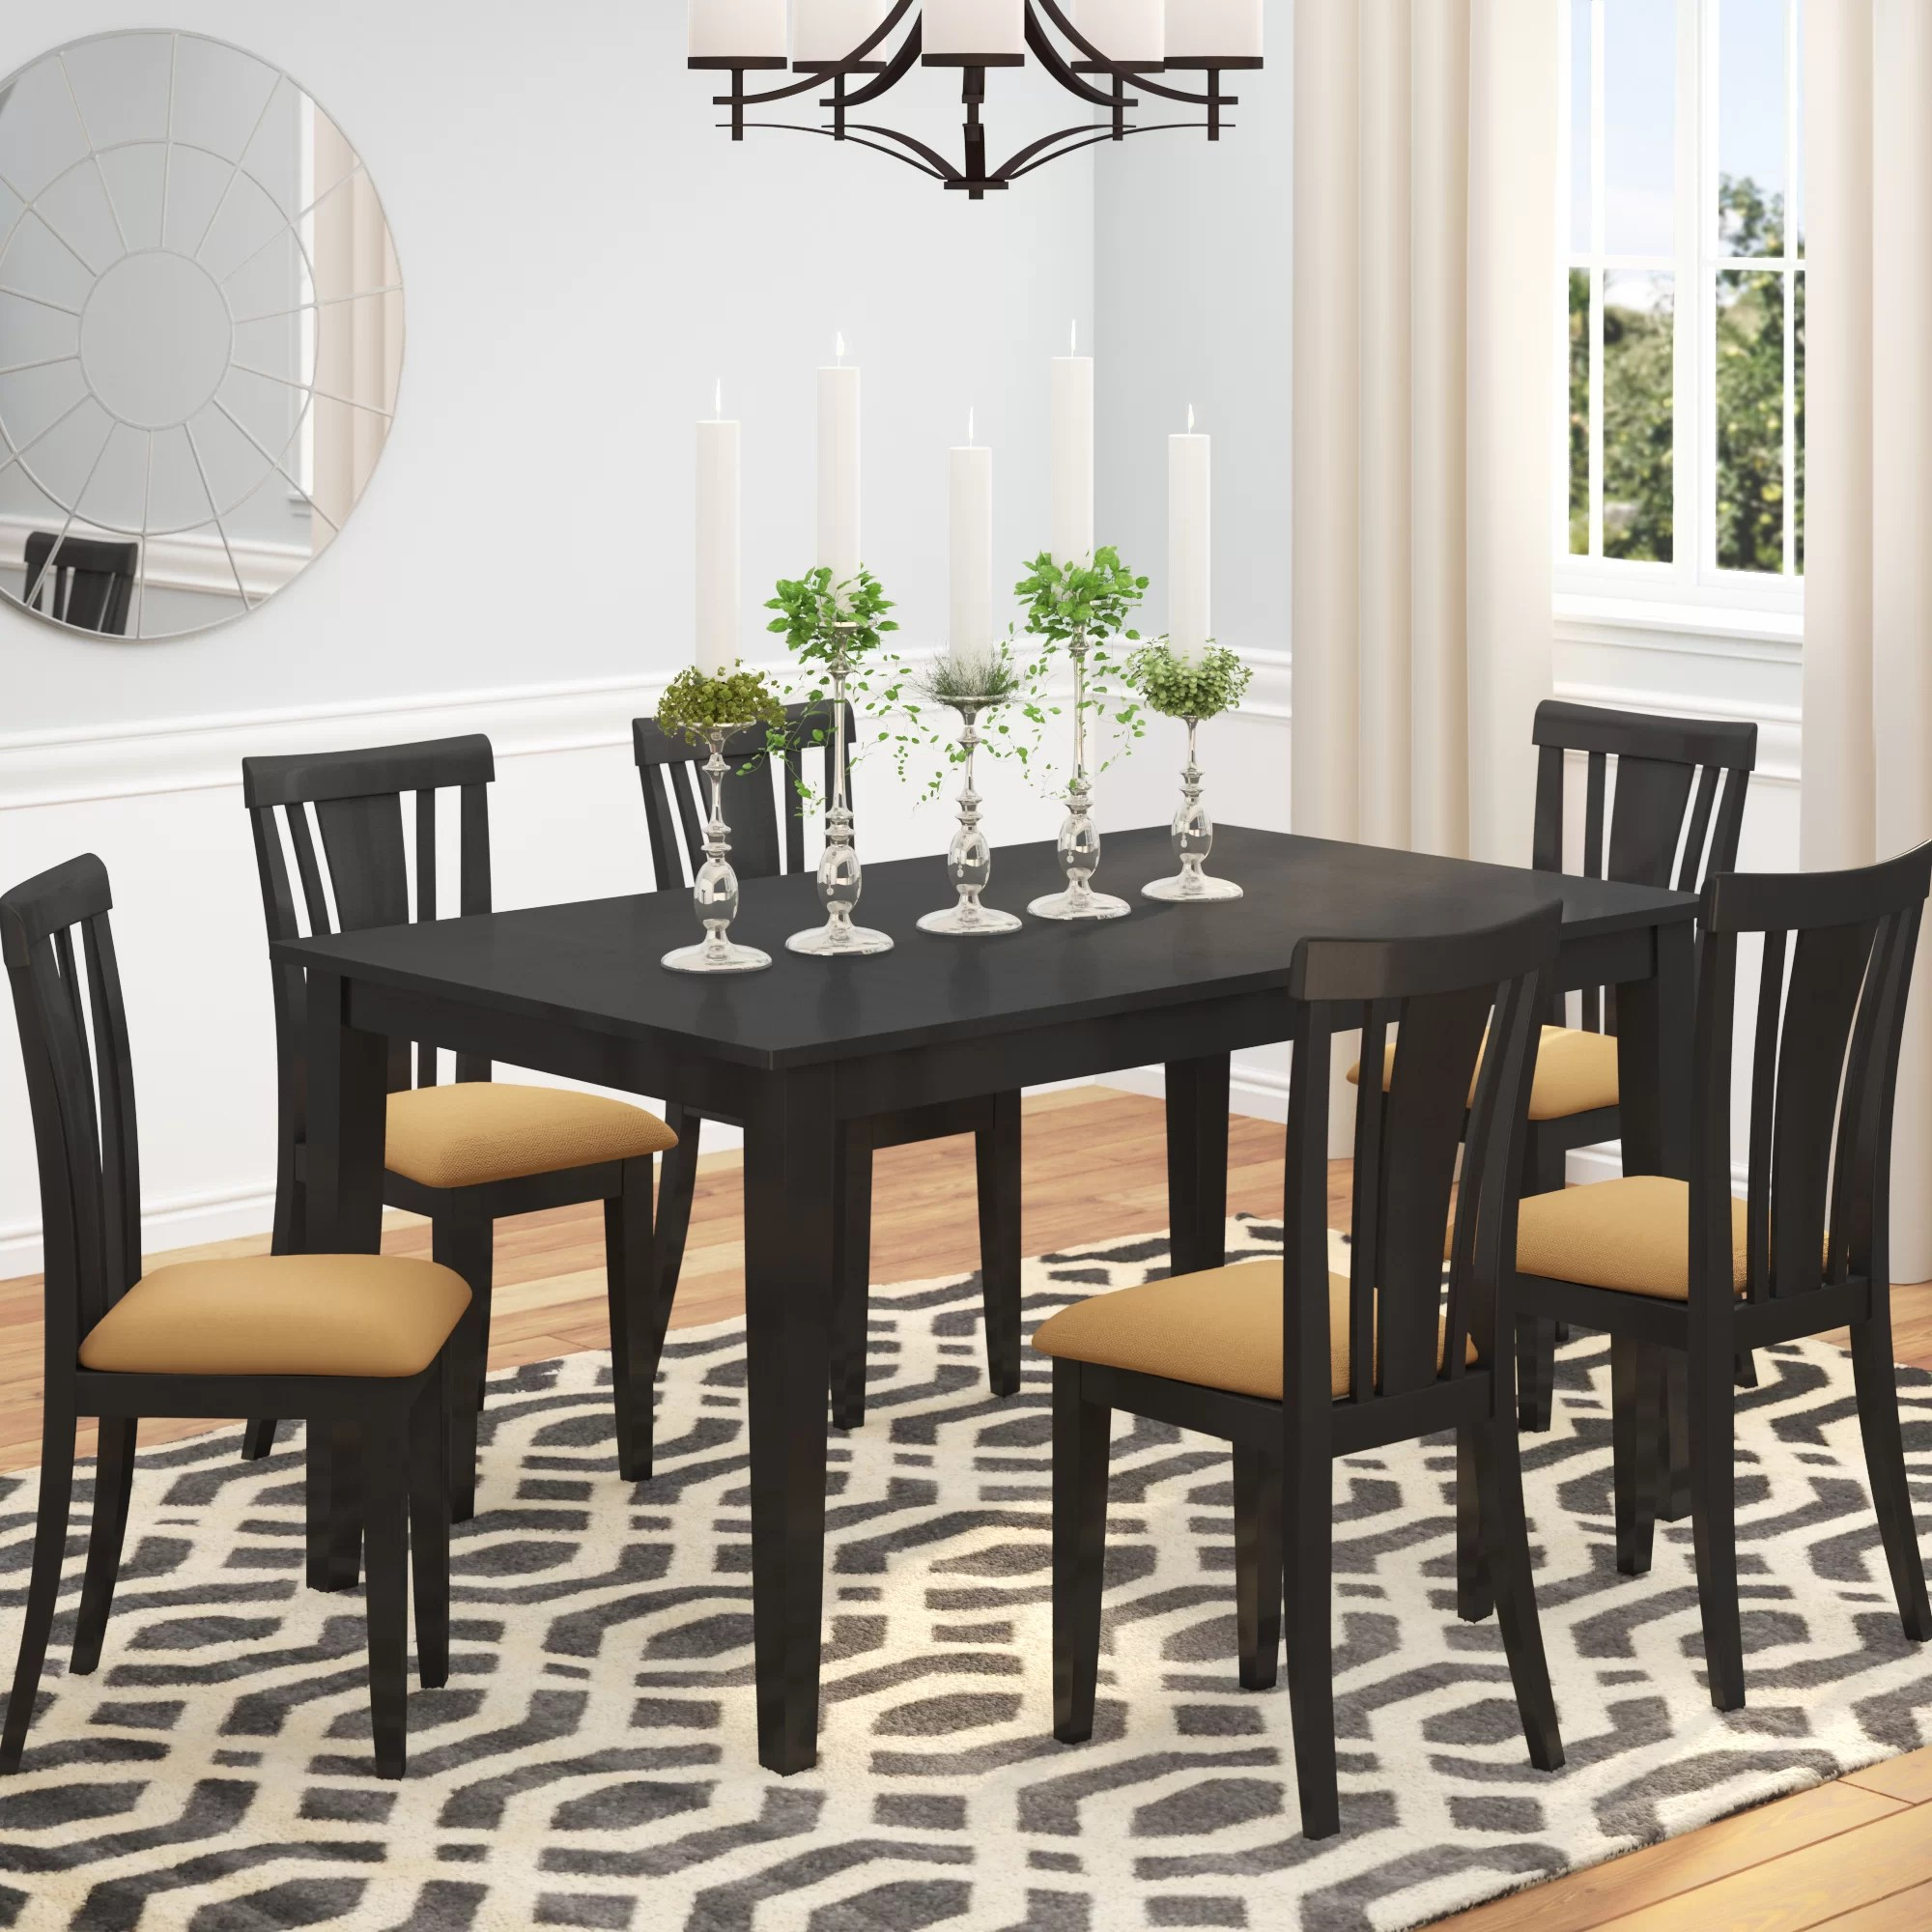 Modern Dining Set Oneill Modern 7 Piece Wood Dining Set